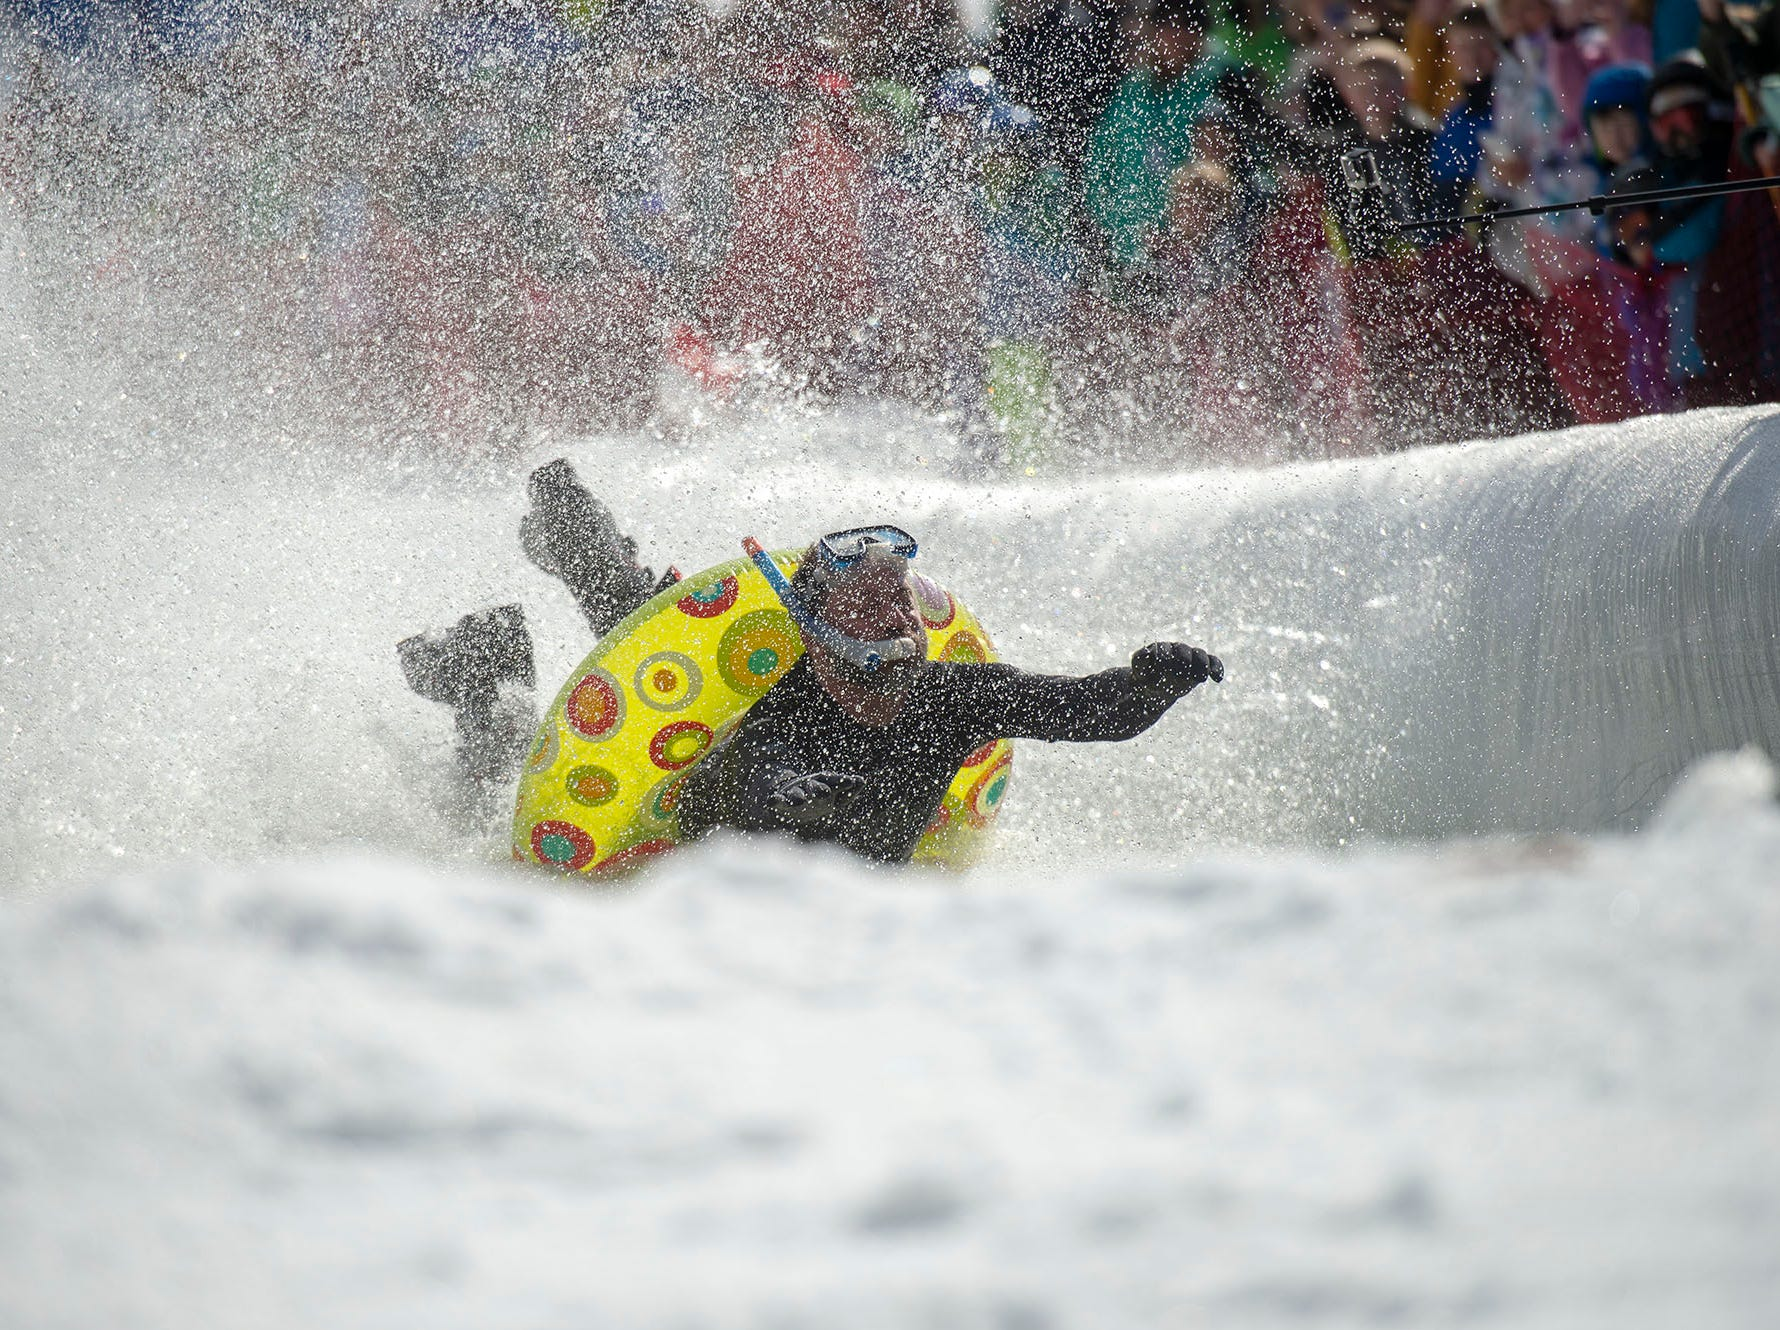 The tube and snorkel came in handy for this particpant who ended up in the pond at Roundtop Mountain Resort on Saturday, March 16, 2019.